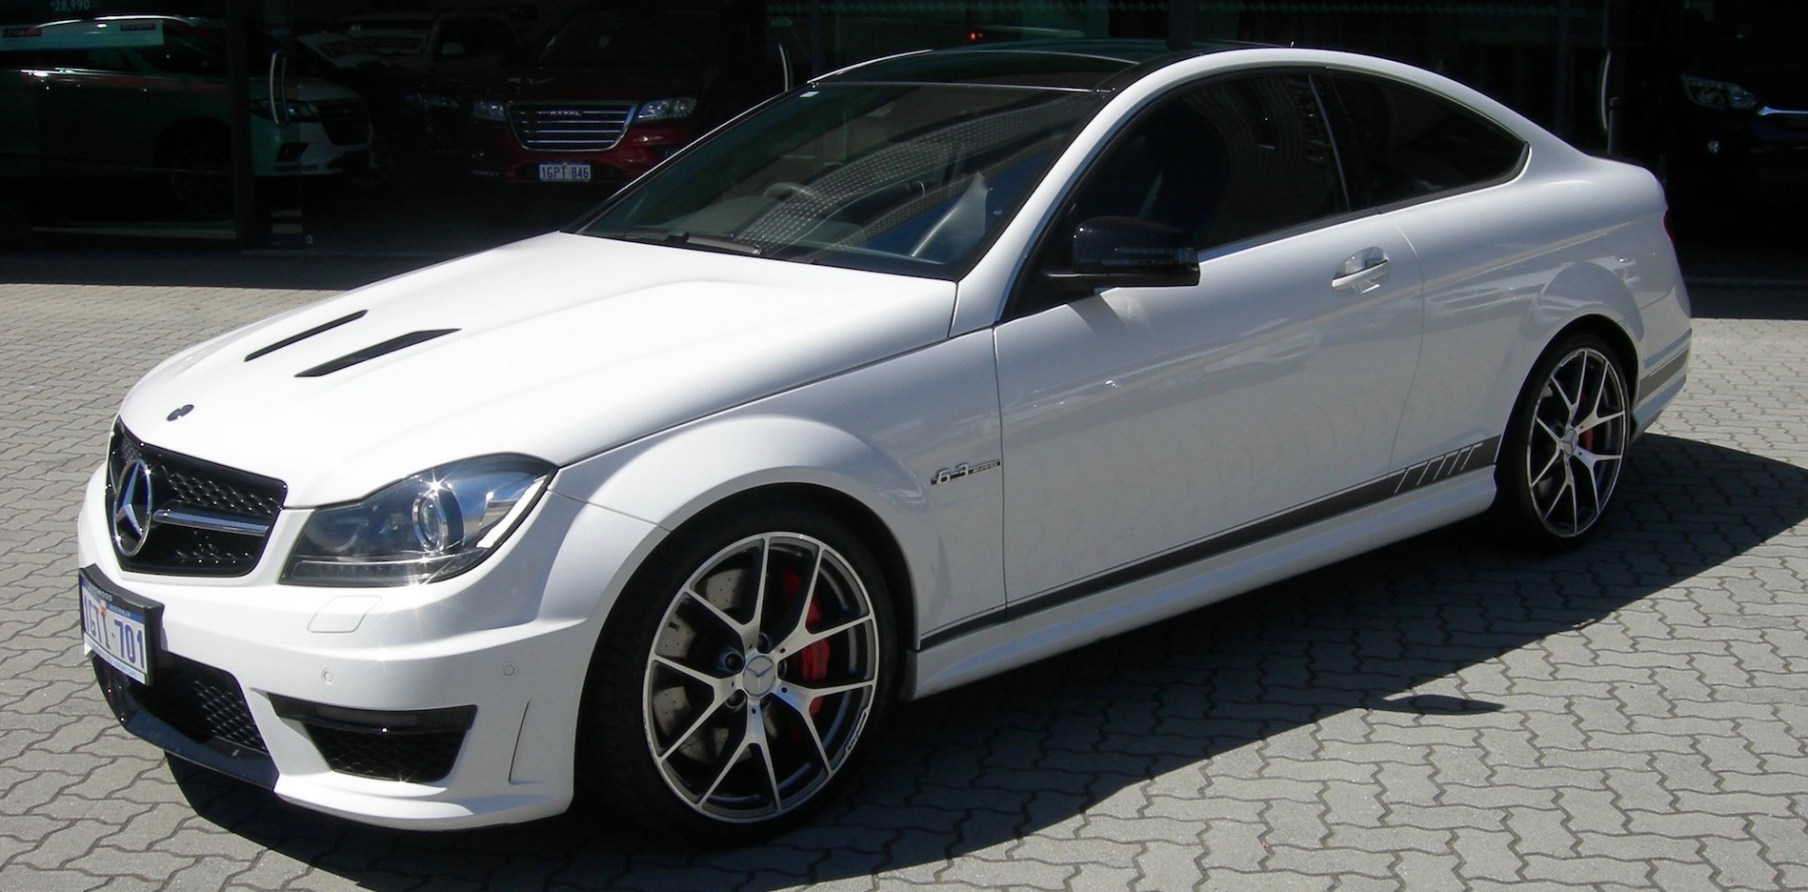 Mercedes Benz C63 AMG for sale in Perth